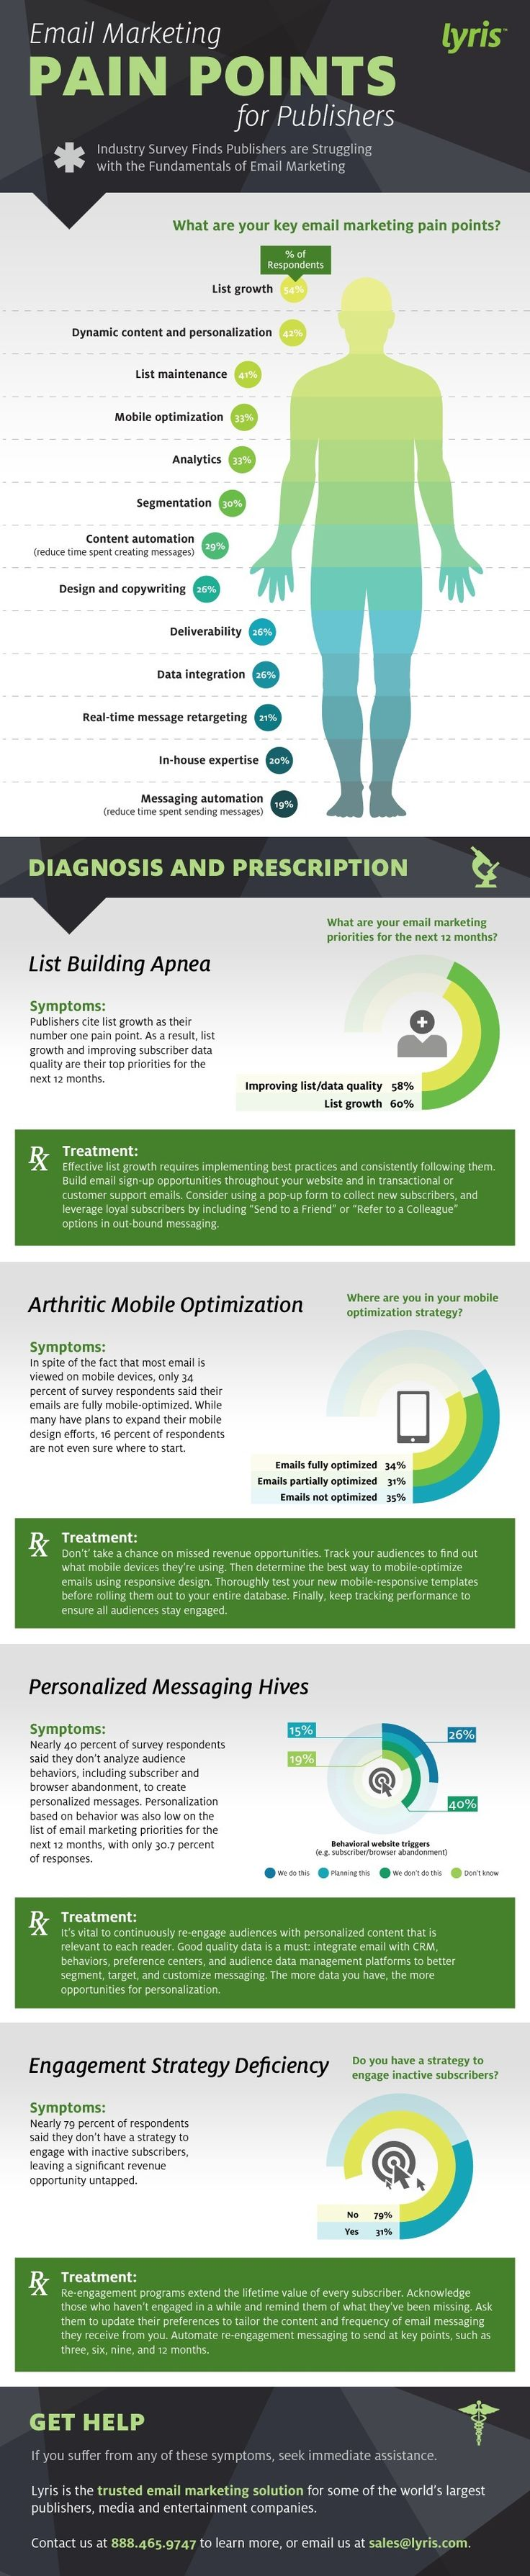 Top Email Marketing Pain Points [Infographic]